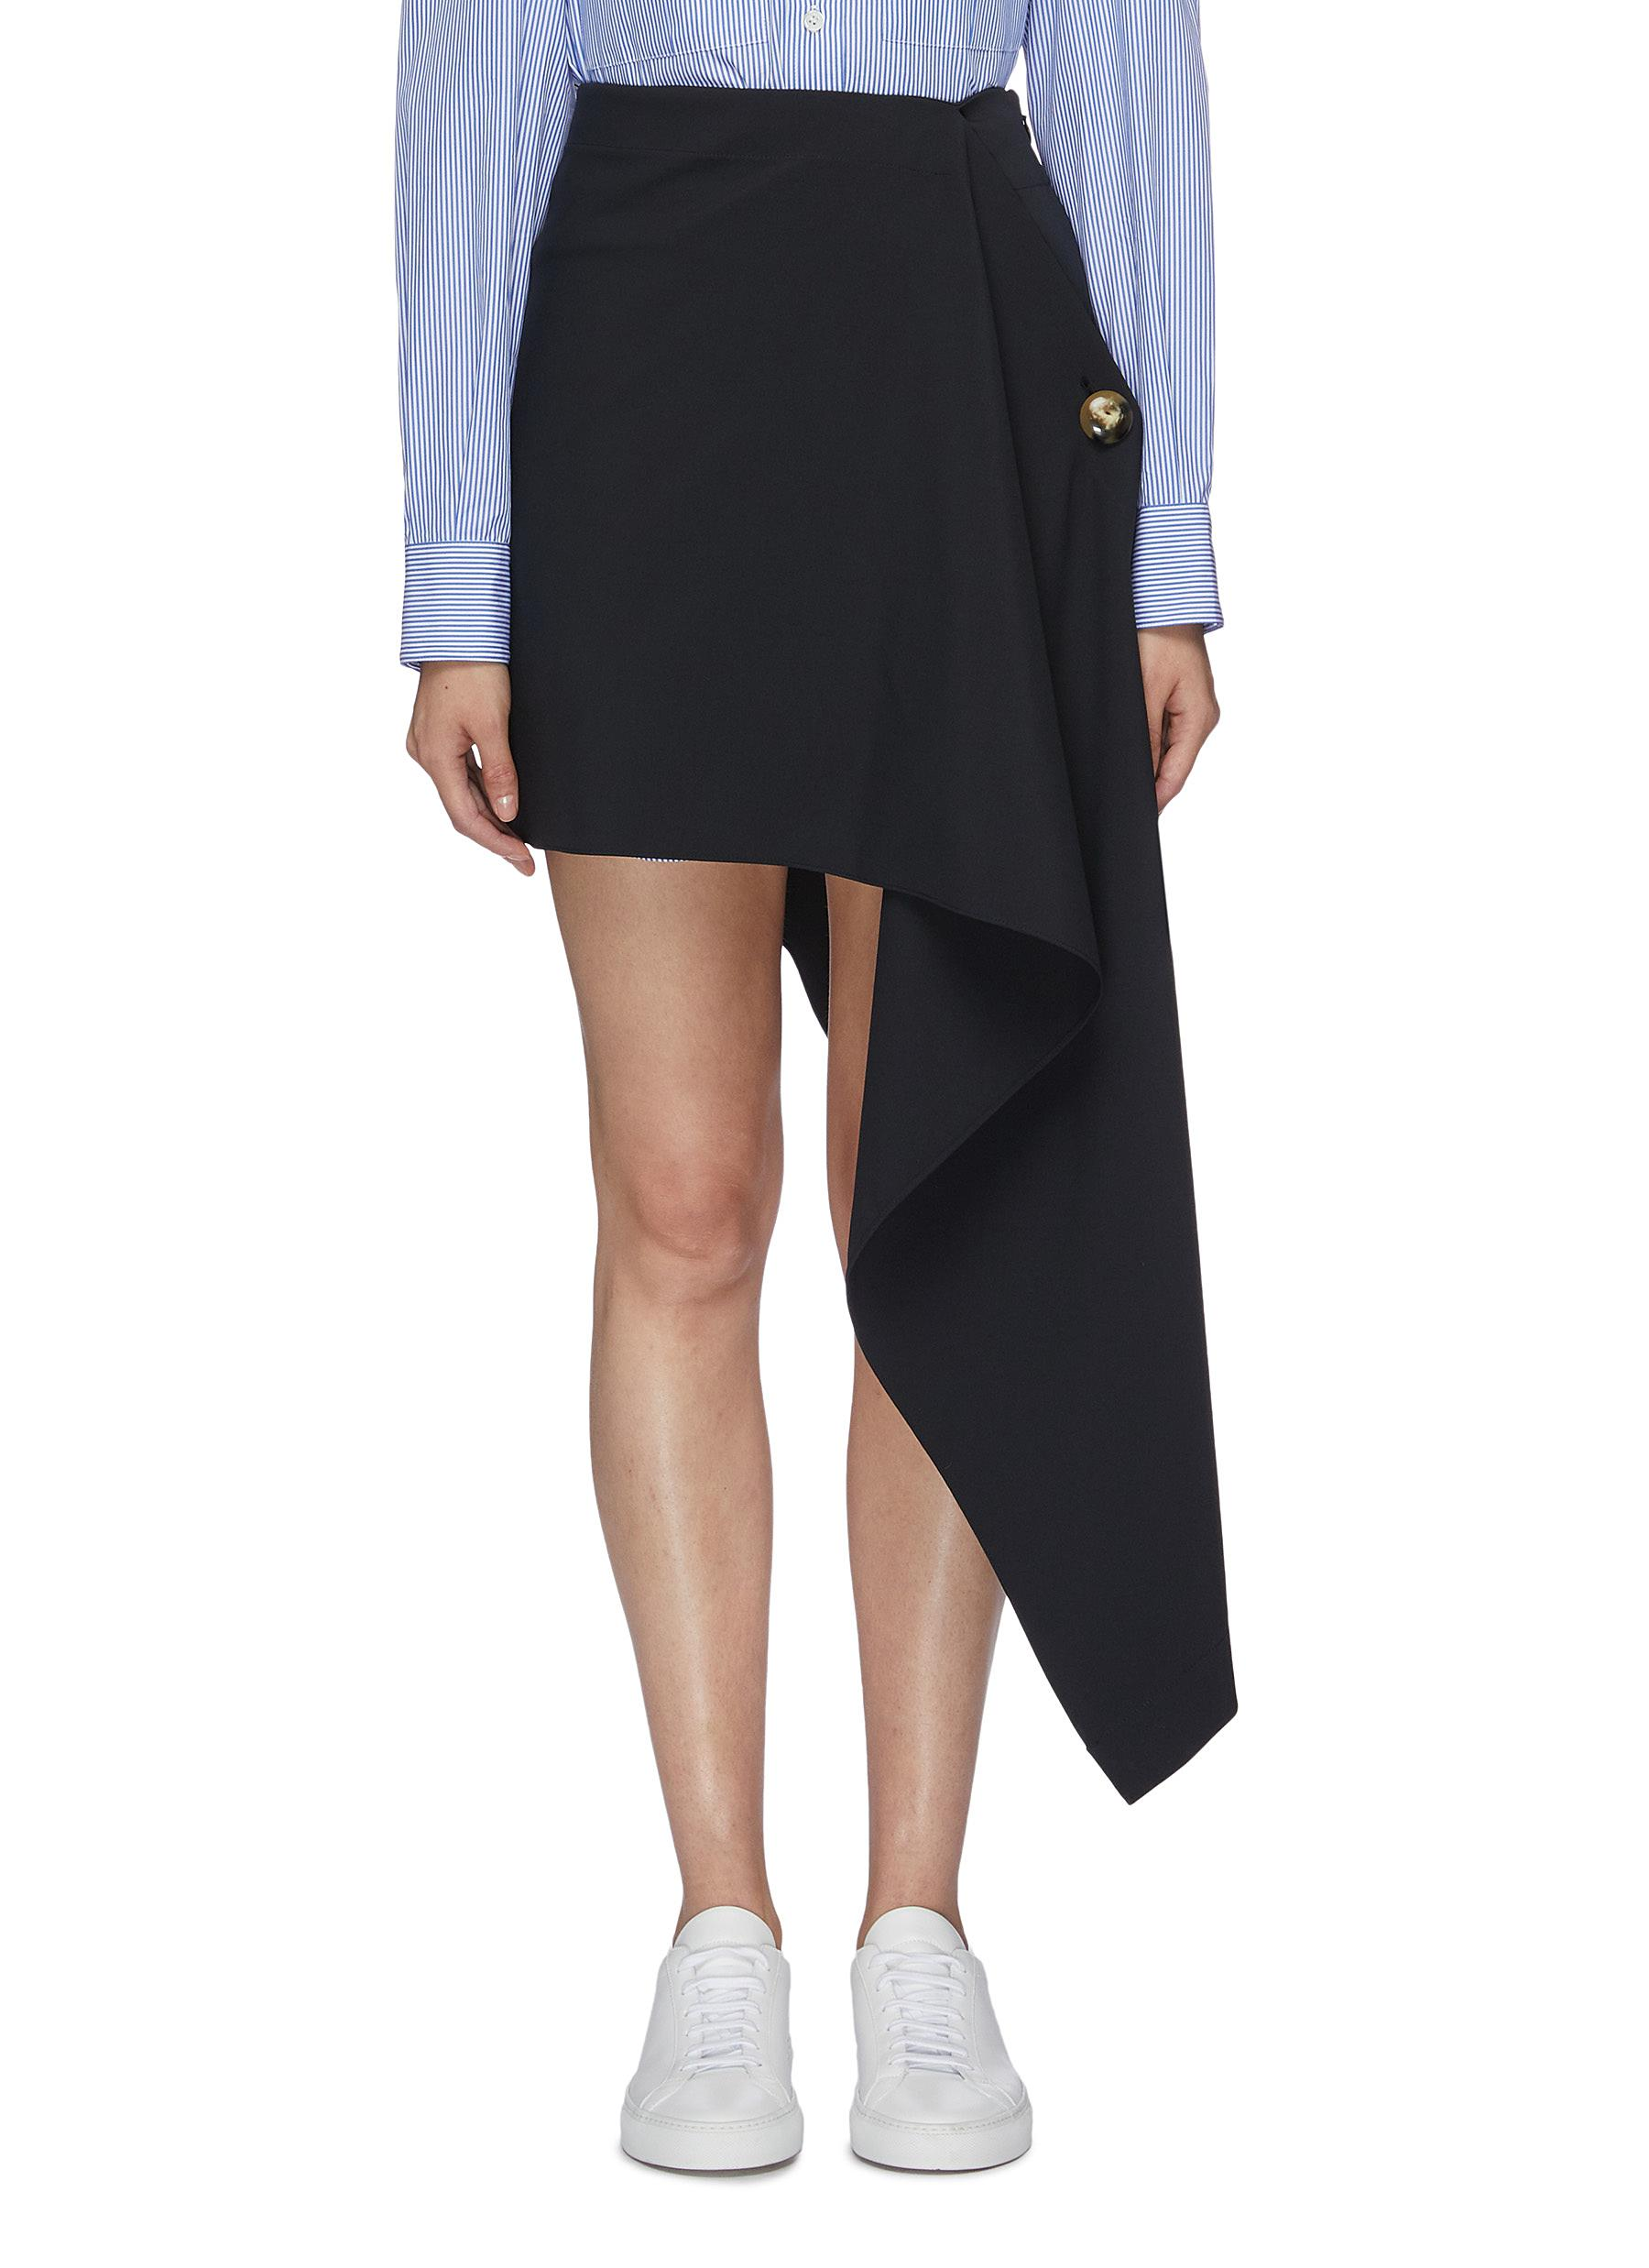 Drape panel skirt by Equil